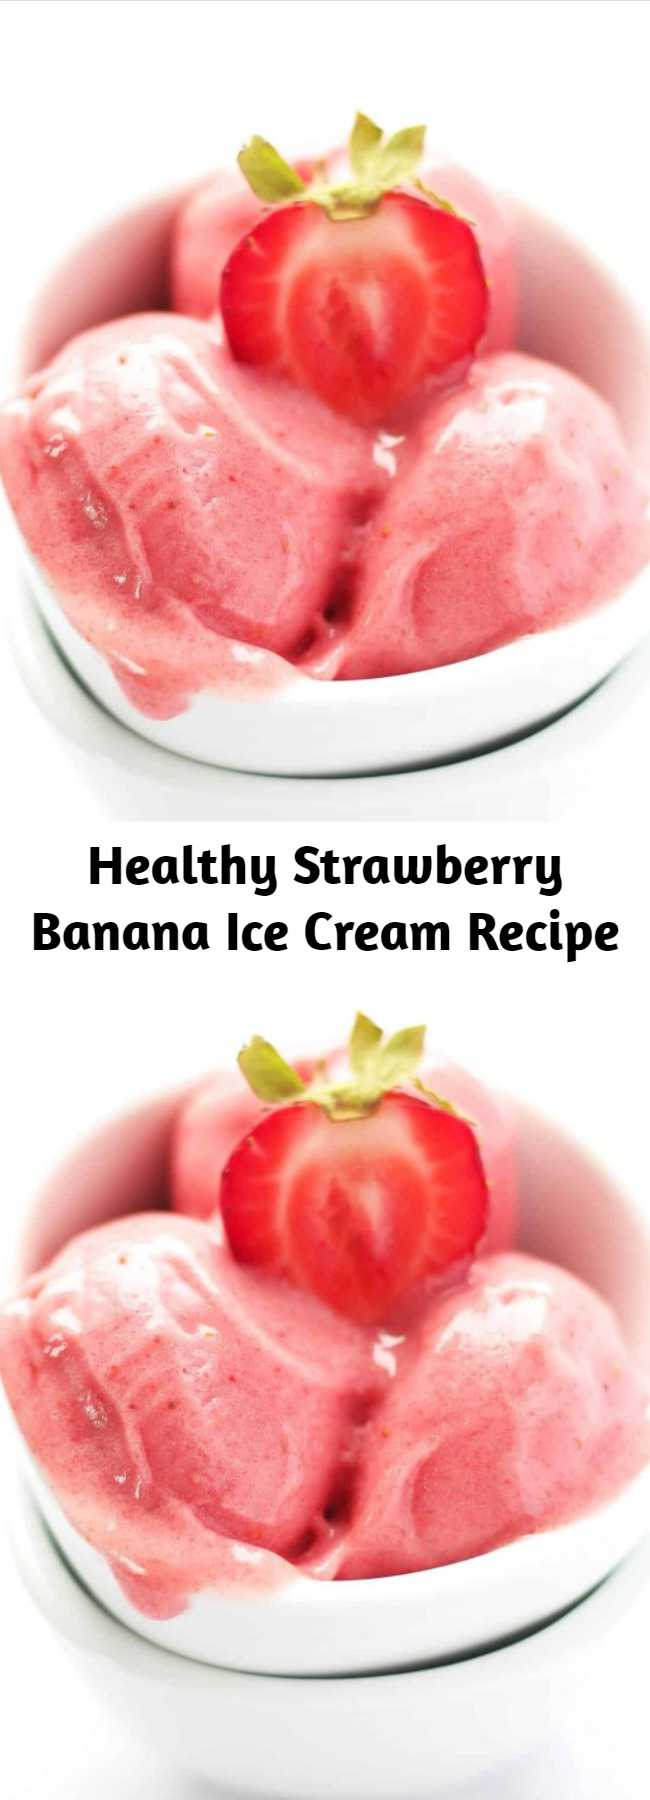 Healthy Strawberry Banana Ice Cream Recipe - If you are looking for a healthy frozen treat, you HAVE to learn how to make this simple 2 ingredient Strawberry Banana Ice Cream at home. It is clean eating, dairy free, vegan, paleo and requires no added sugar. Kids love this homemade strawberry ice cream and it is a great recipe to get them involved in the process. #icecream #summer #dessert #healthy #vegan